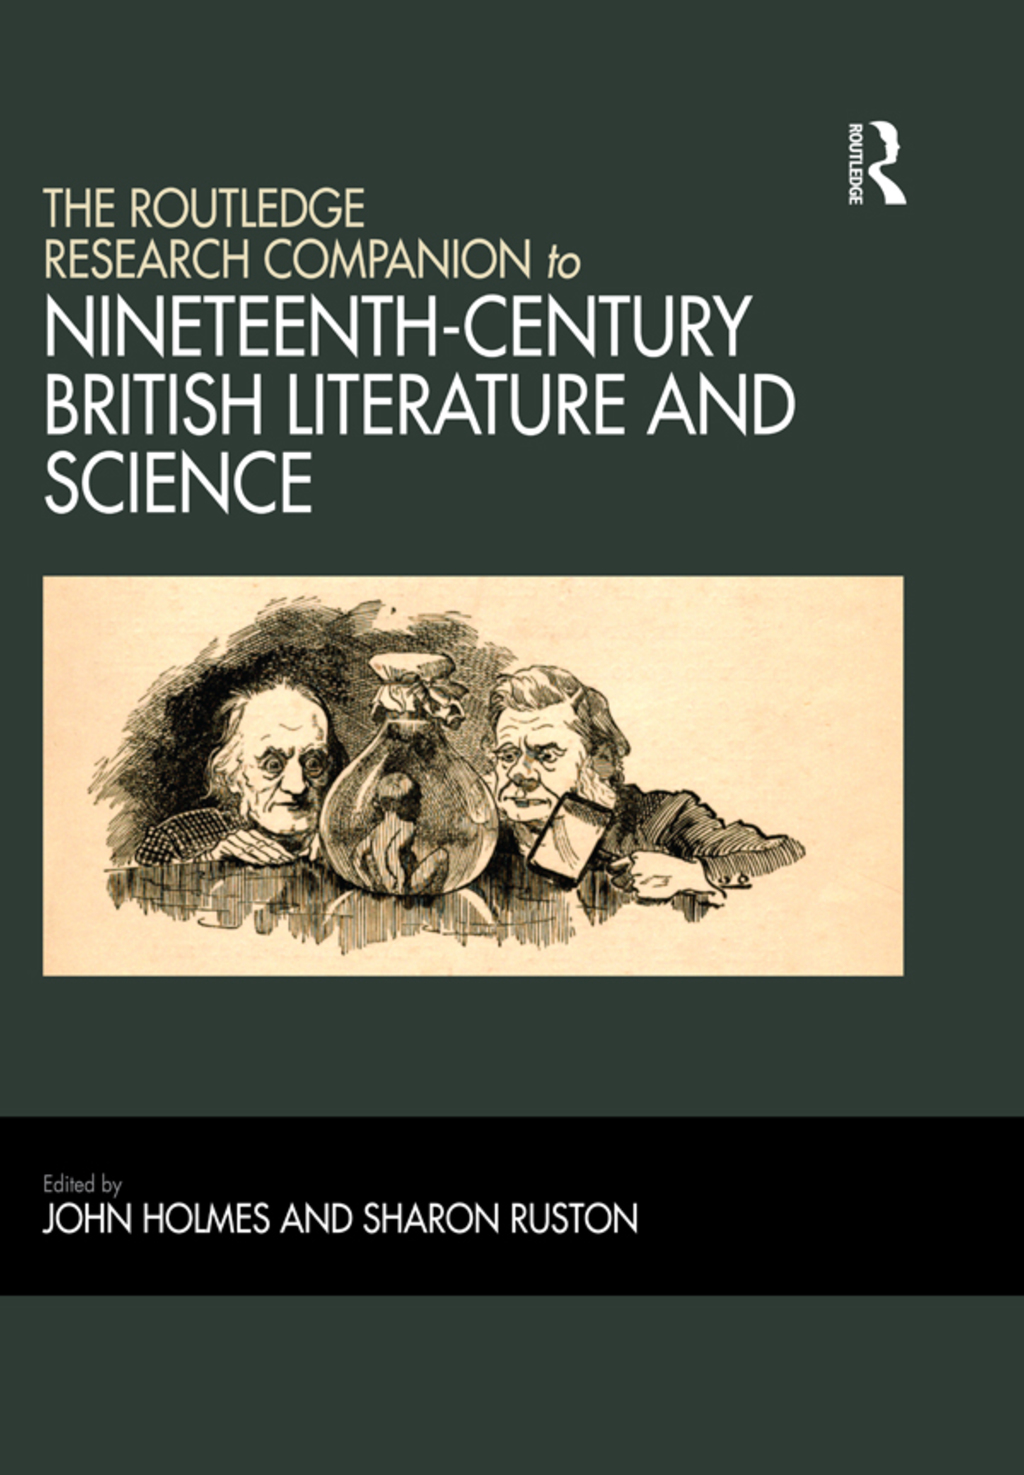 The Routledge Research Companion to Nineteenth-Century British Literature and Science (ebook) eBooks